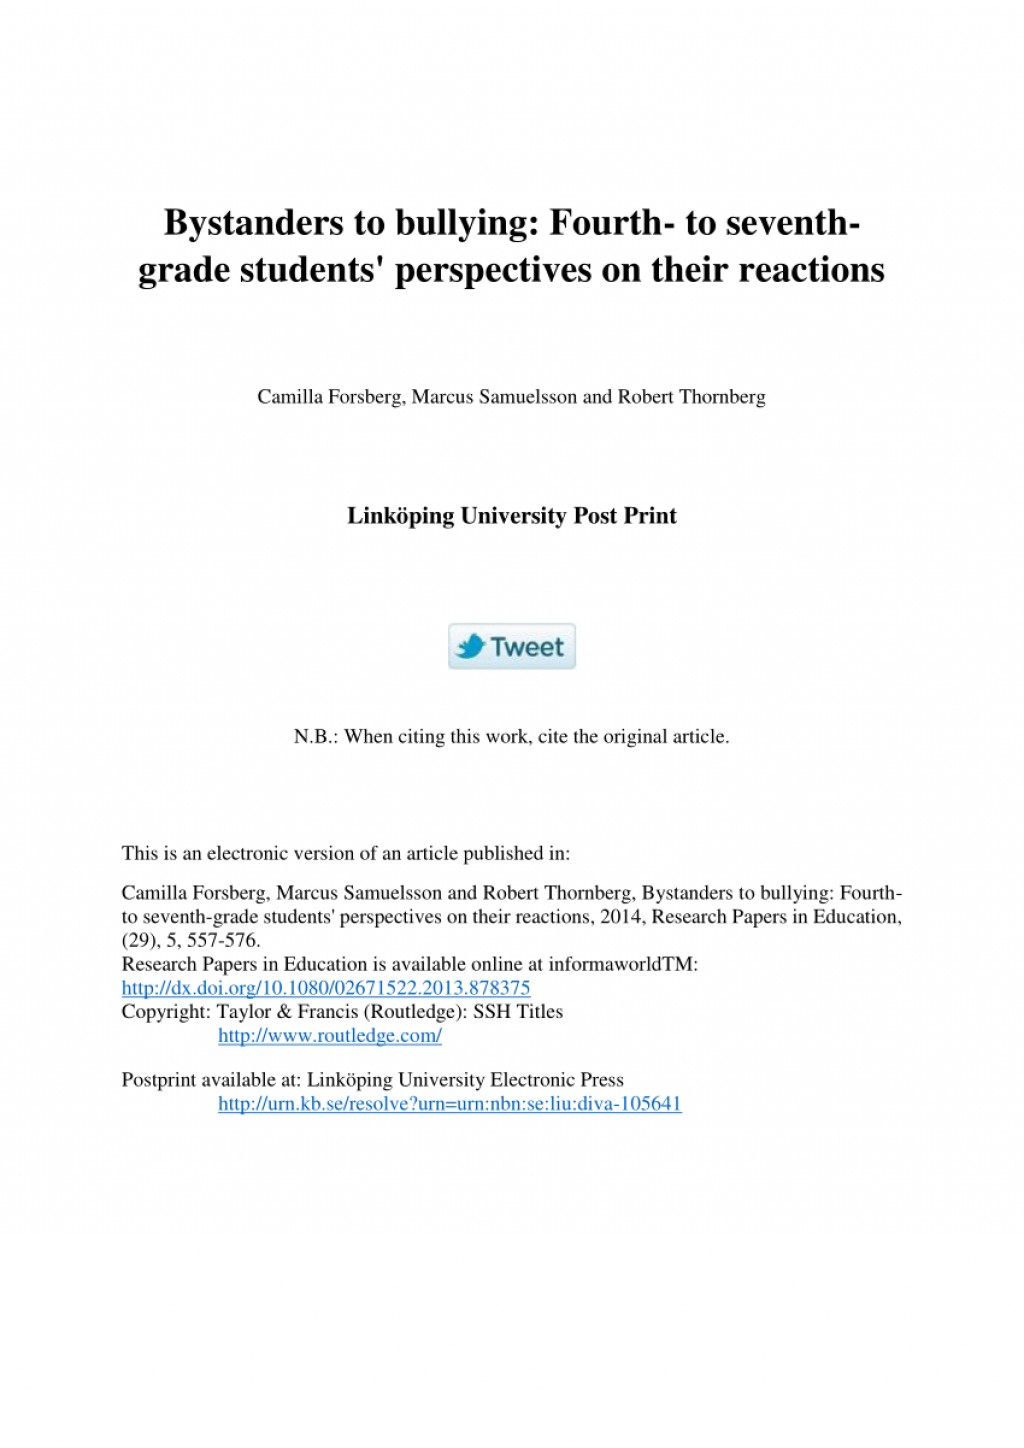 003 Research Paper Bullying Papers Formidable Cyberbullying Anti Example Large